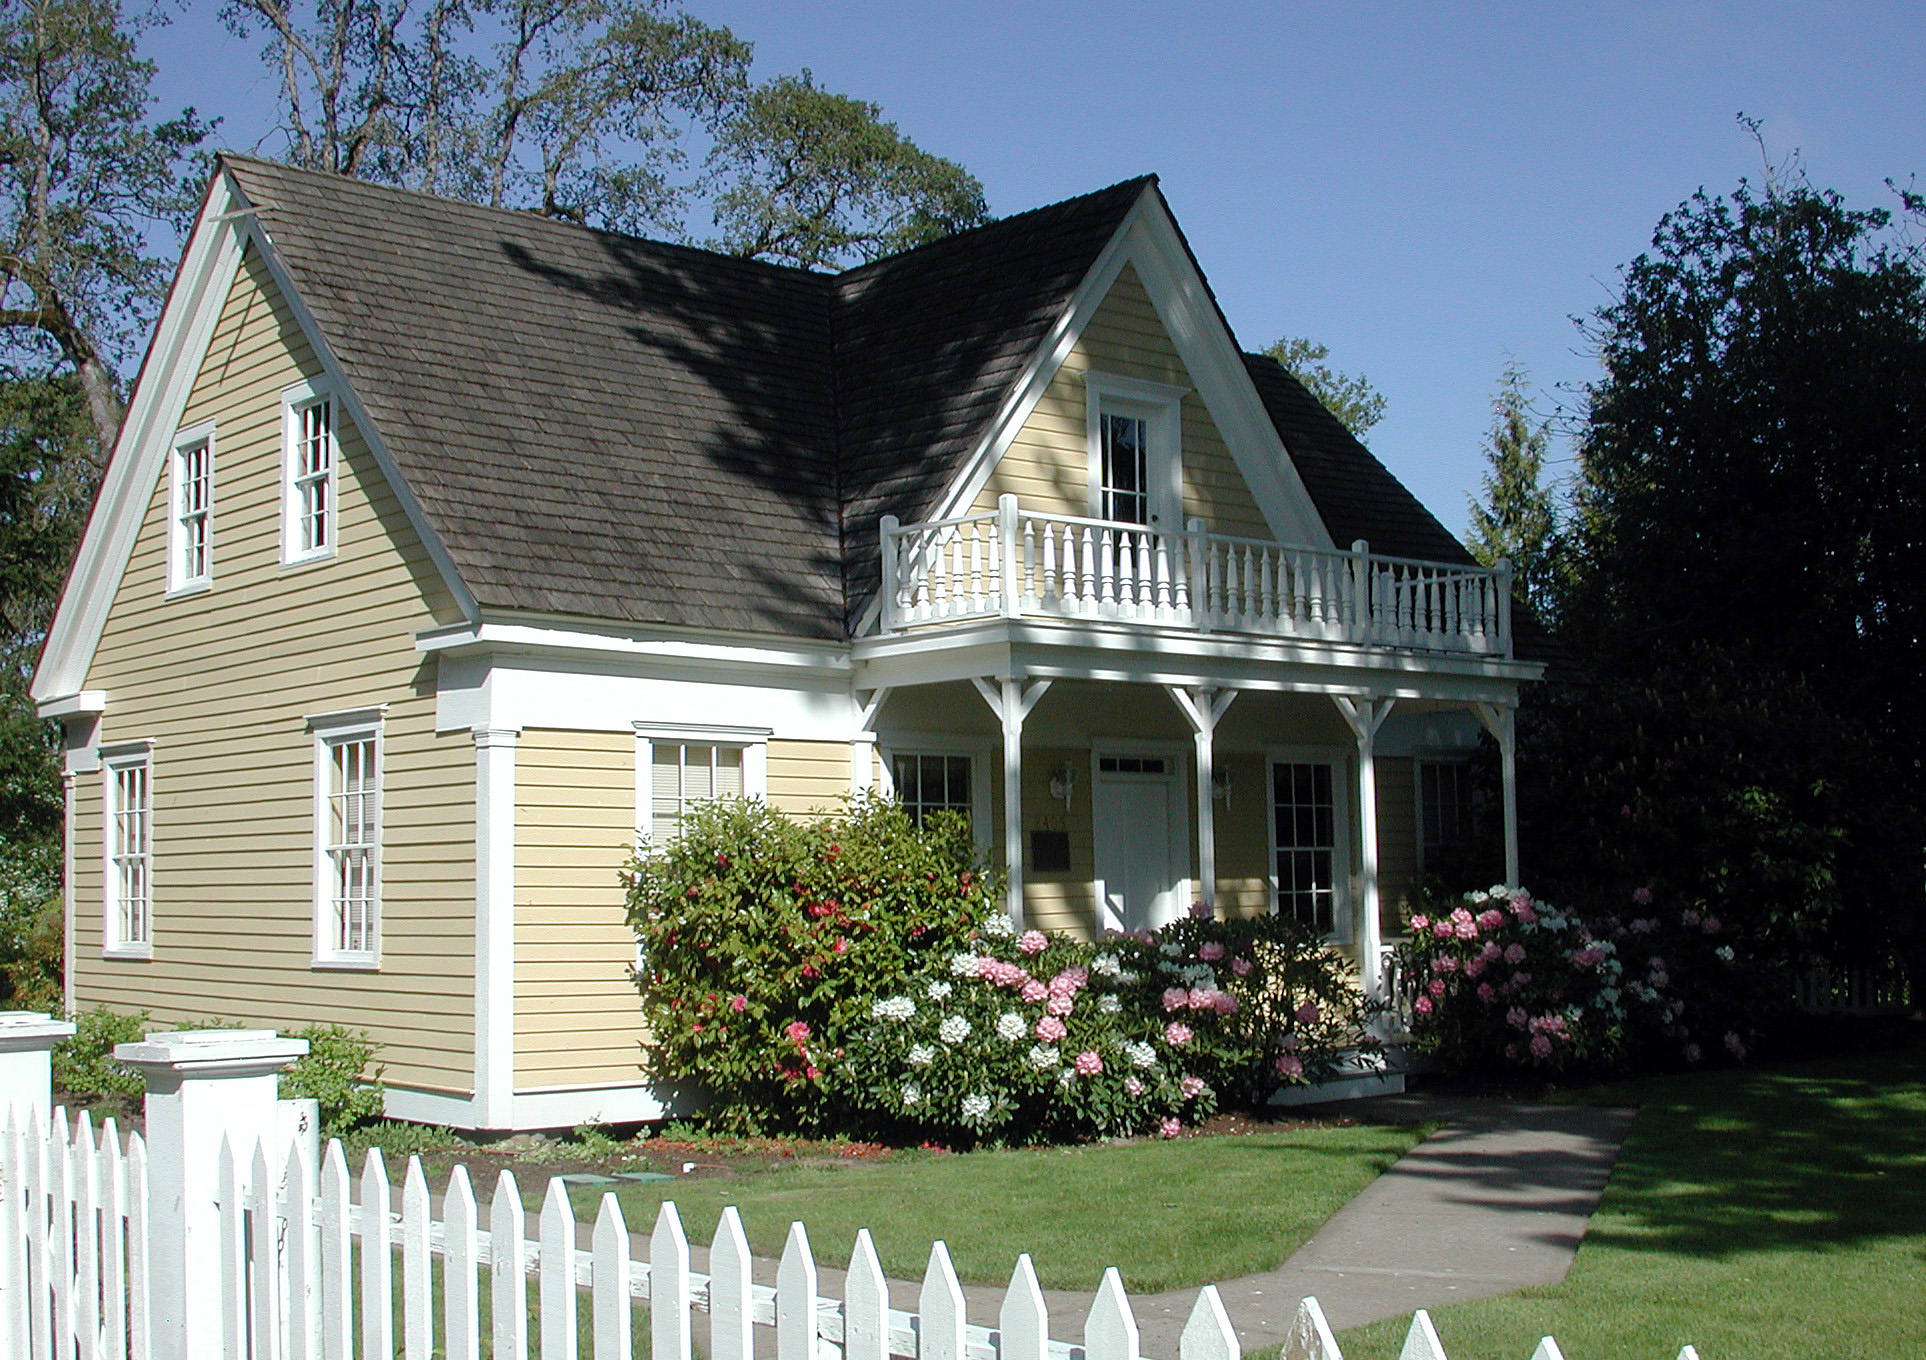 Fanno Farmhouse, Oregon, built 1859. Photo courtesy of Wiki.